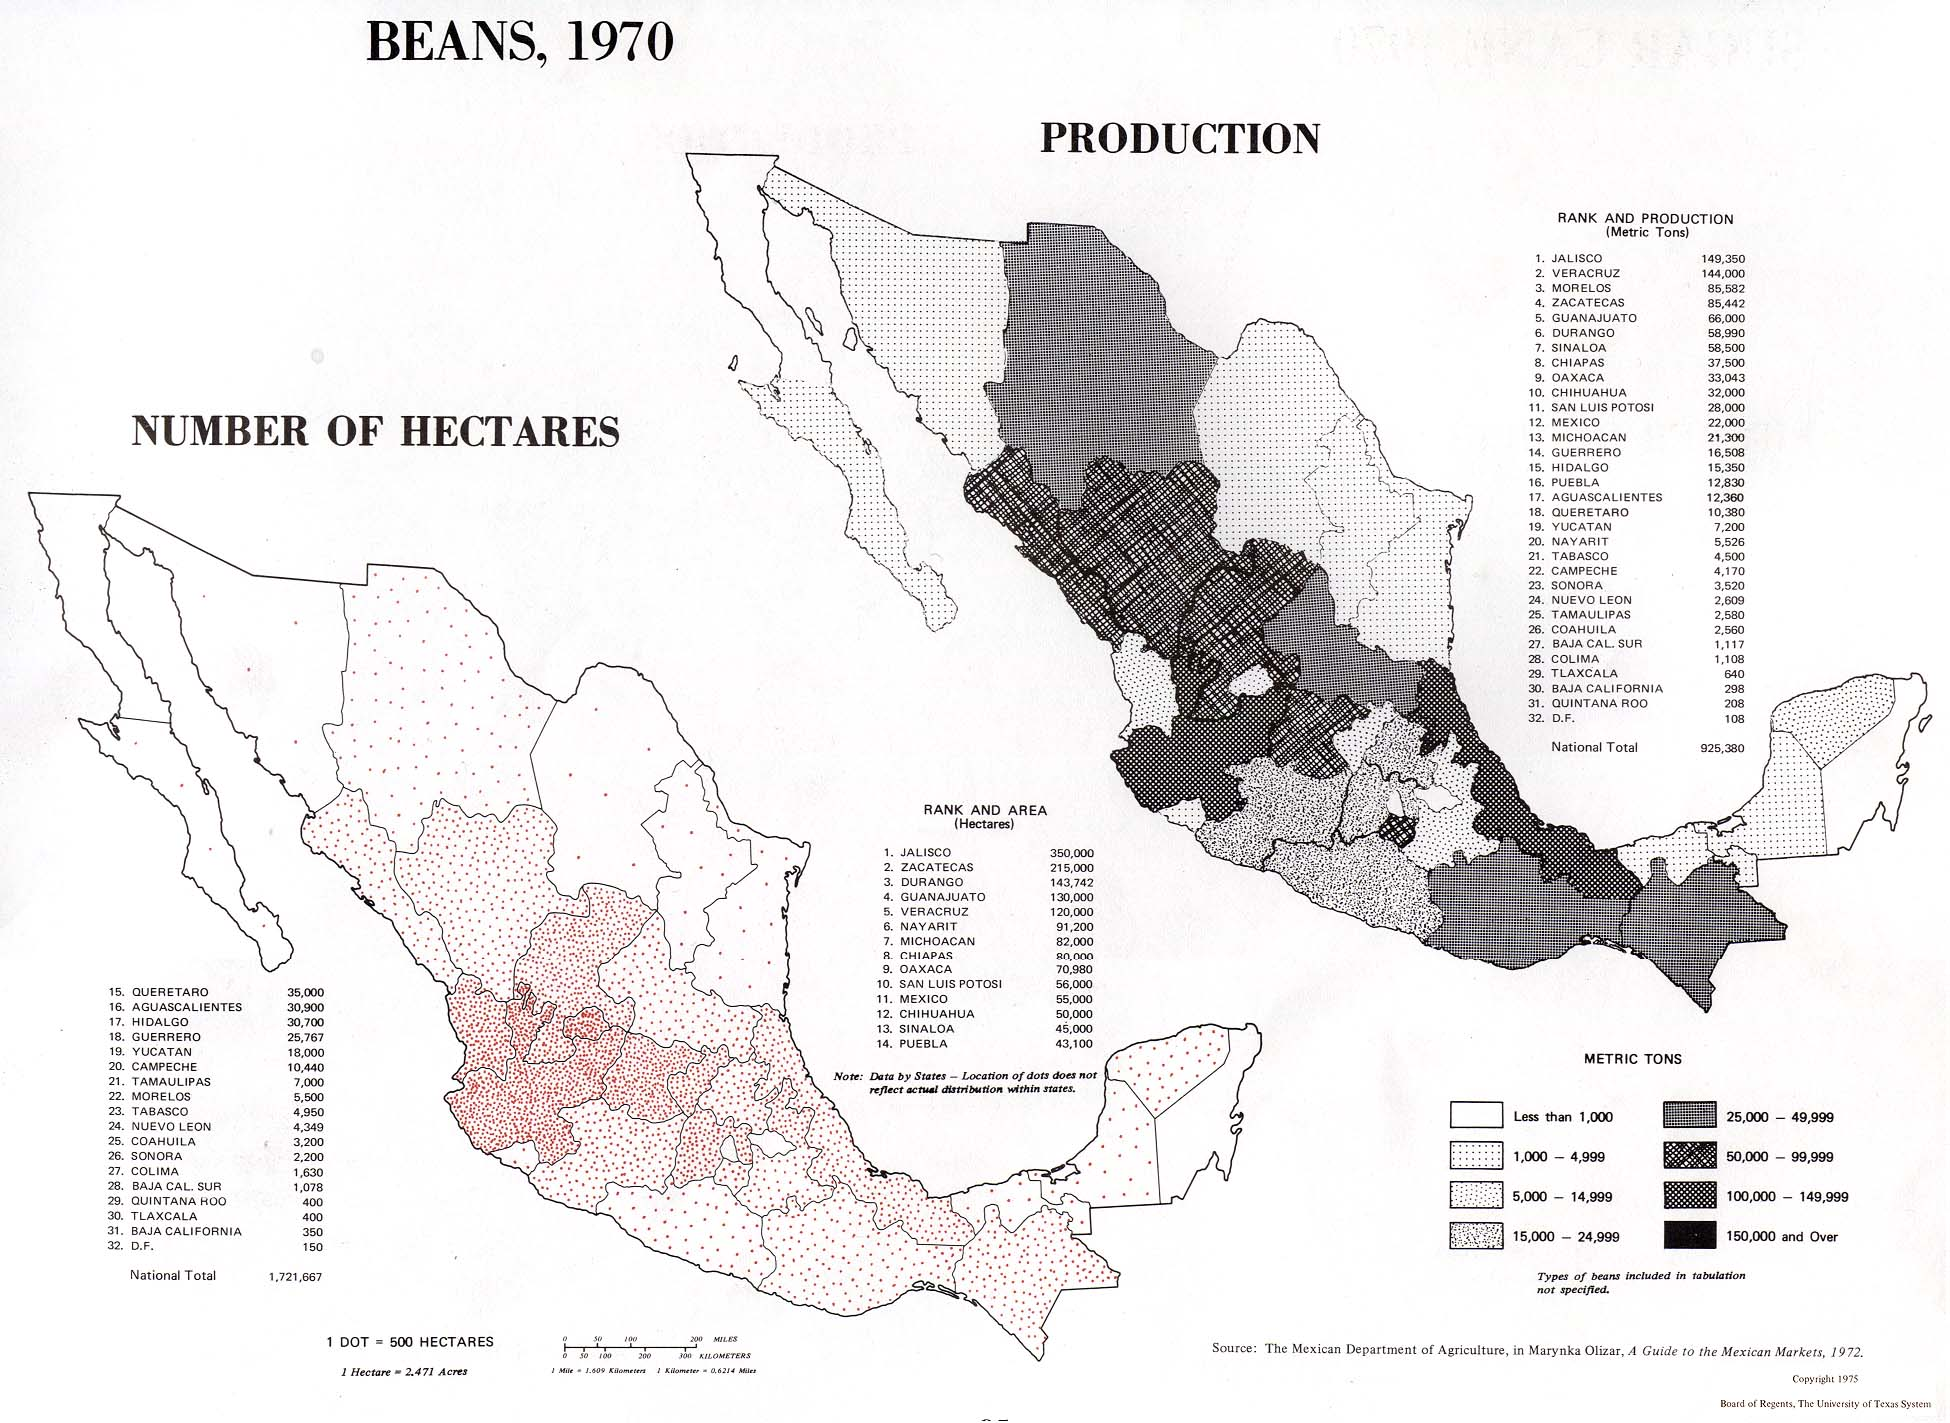 Beans Production in Mexico 1970